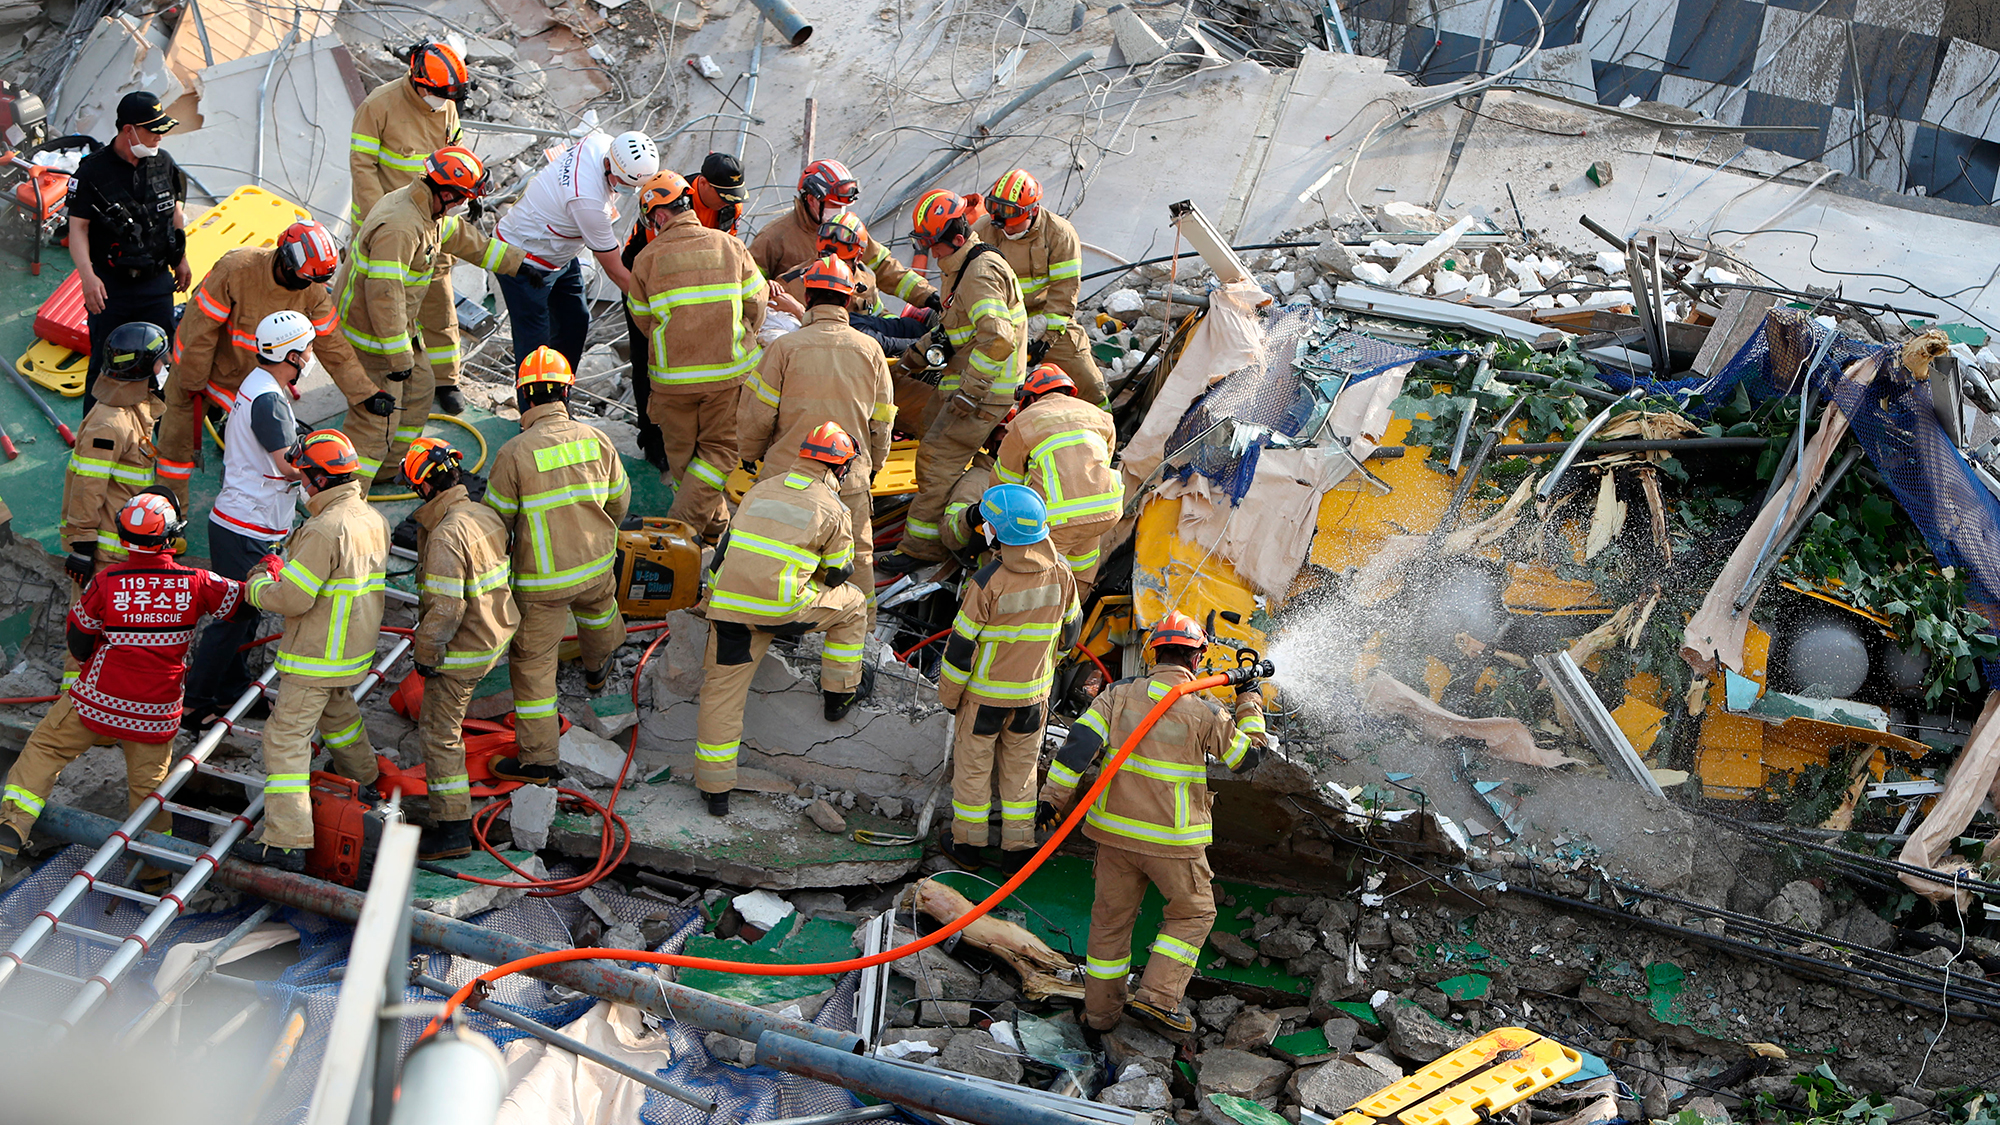 South Korea building collapses onto bus during demolition, killing 9 - WISH-TV